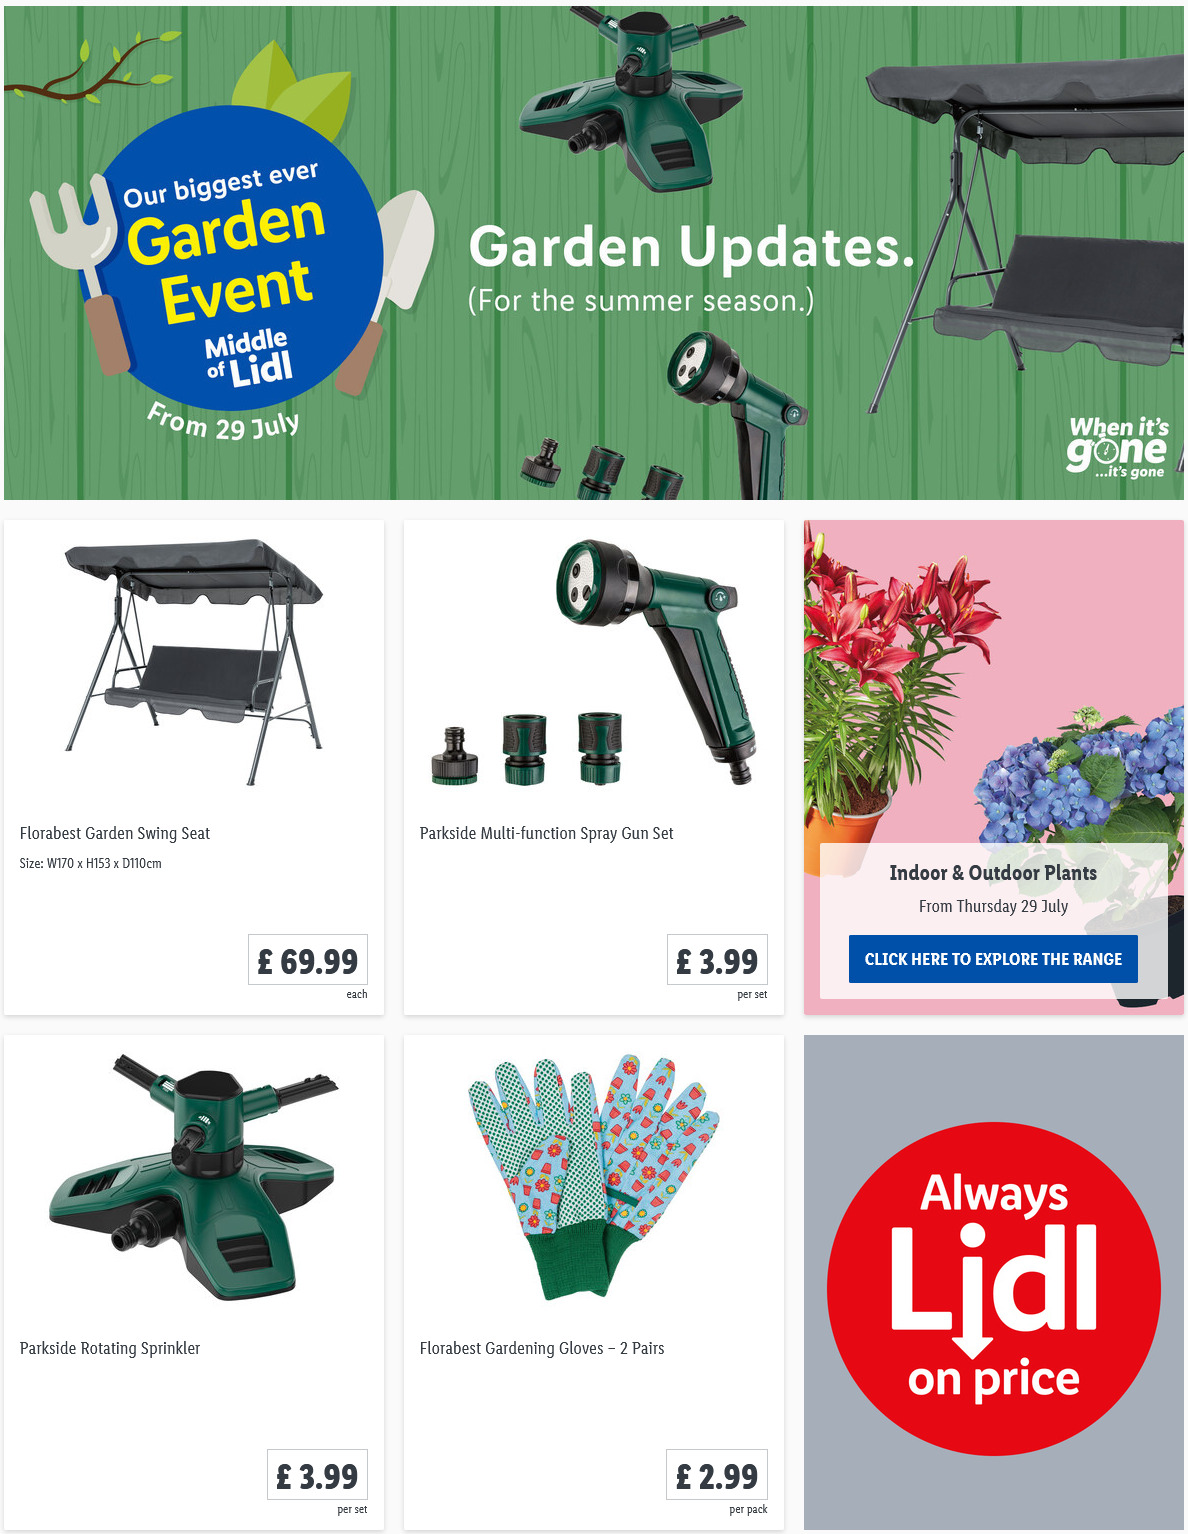 LIDL Garden Update Offers From Thursday, 29th July 2021